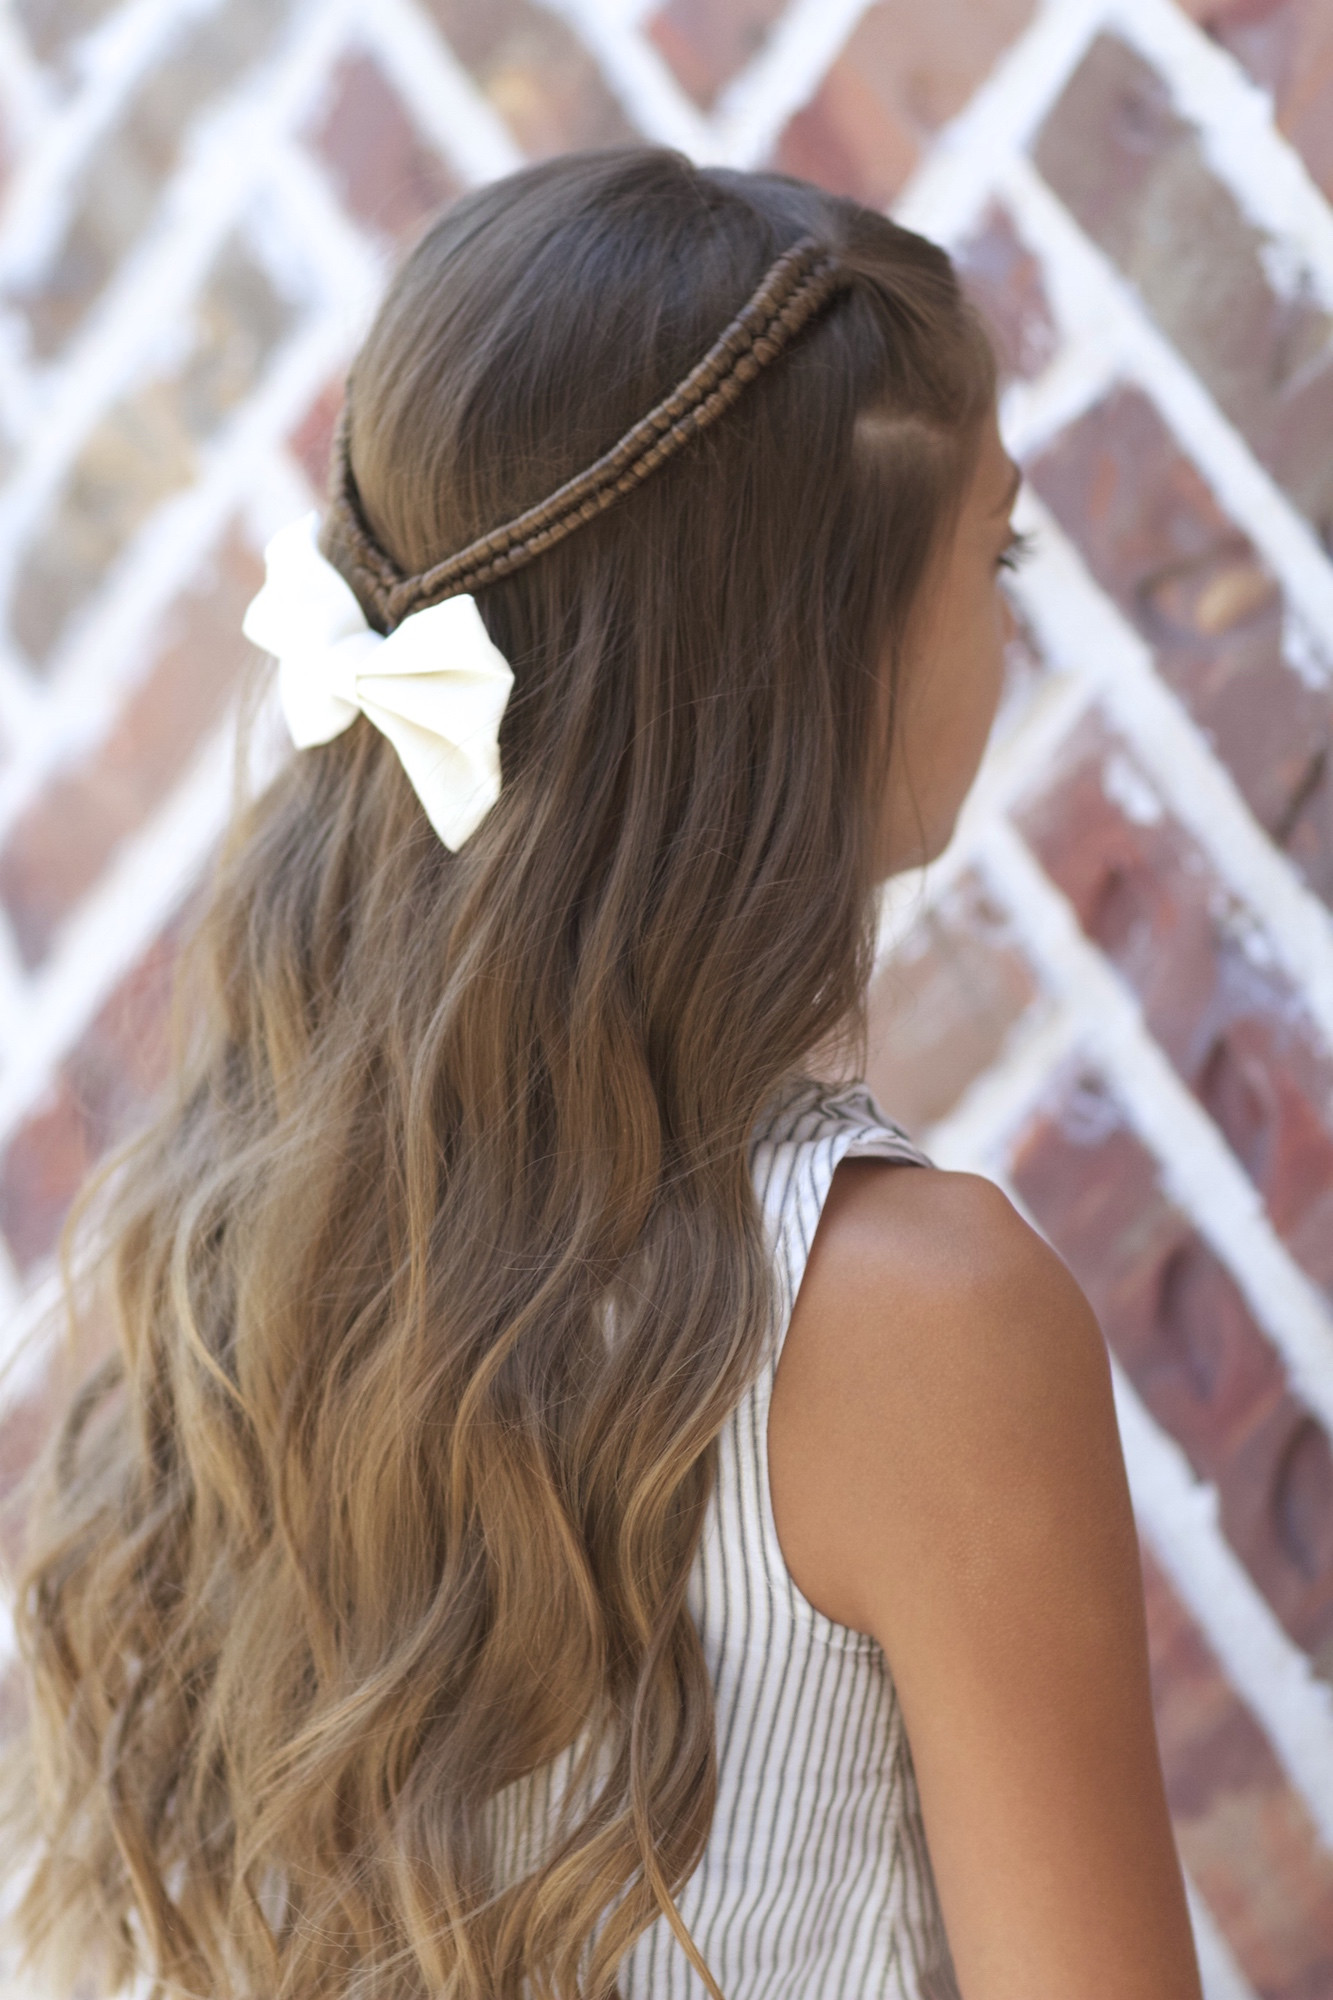 Best ideas about Cute Back To School Hairstyles For Black Hair . Save or Pin Infinity Braid Tieback Back to School Hairstyles Now.